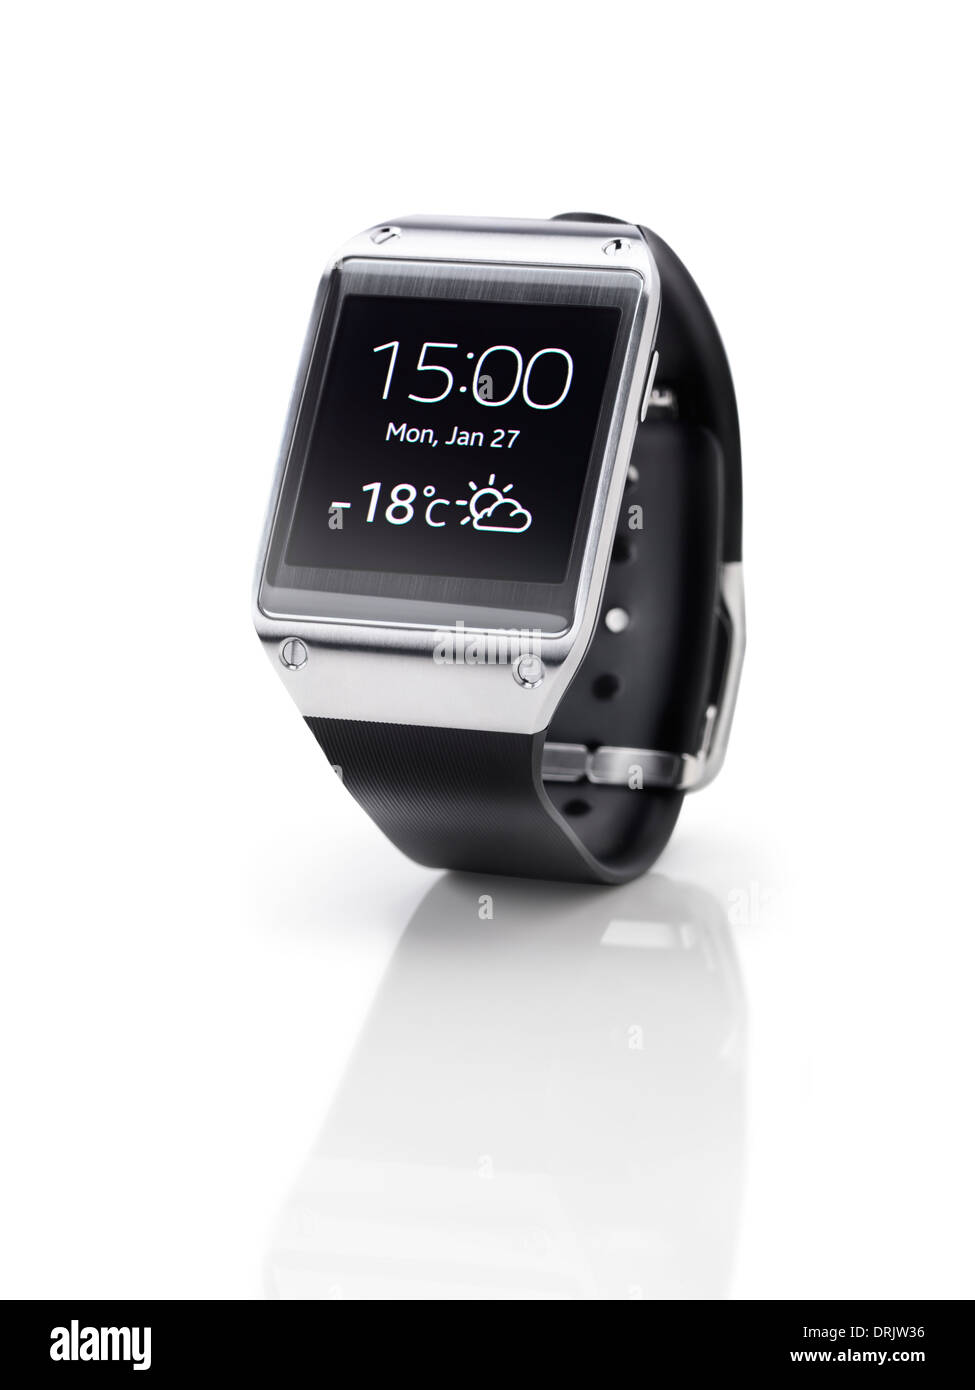 Samsung Galaxy Gear smartwatch closeup. Isolated watch on white background with clipping path. - Stock Image